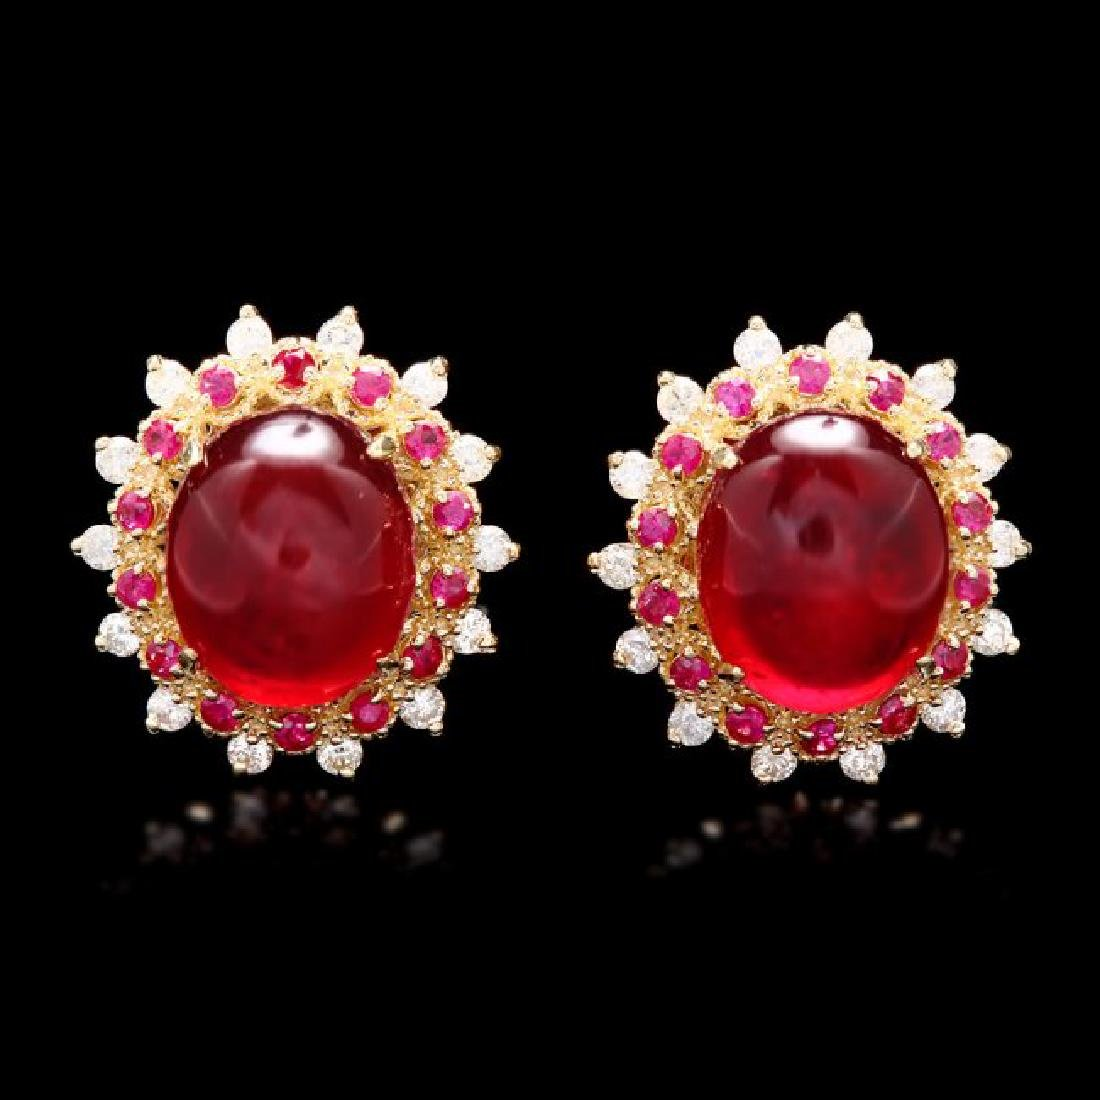 14k Gold 17.65ct Ruby 0.80ct Diamond Earrings